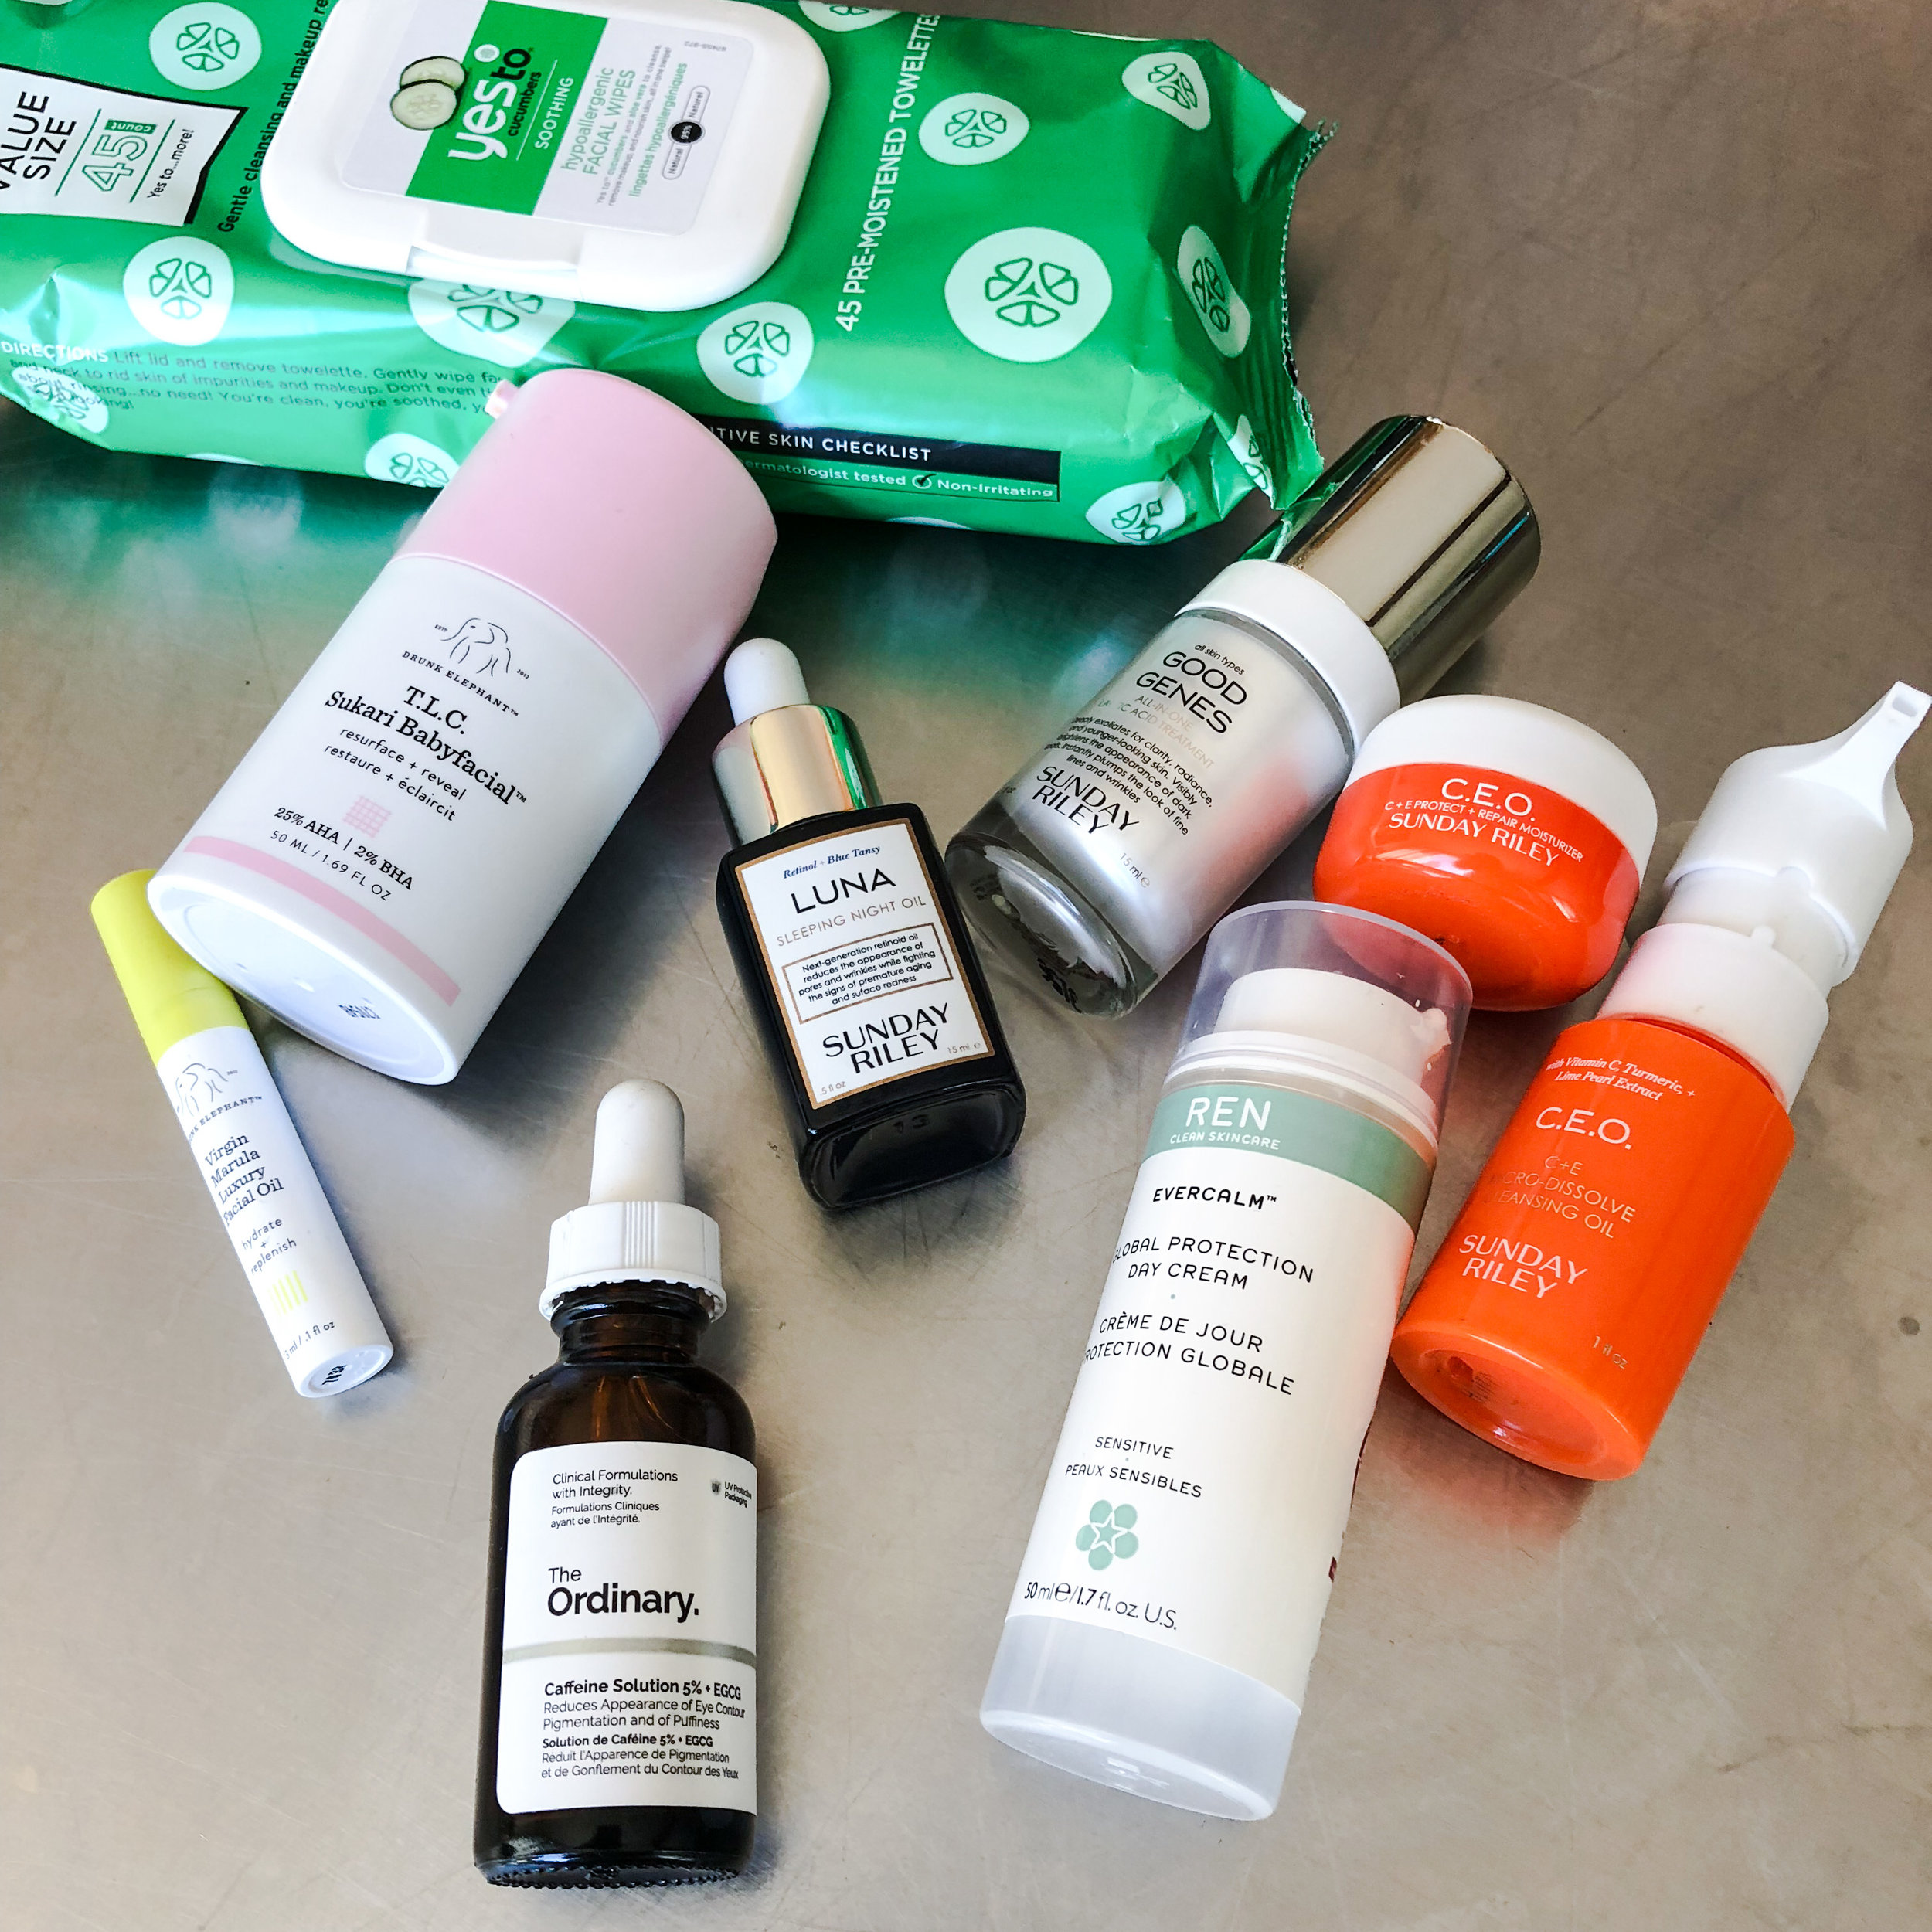 TRYING TO KEEP MY (ALMOST 40 YEAR OLD) SKIN LOOKING YOUNG by Jen Fisch via Keto In The City